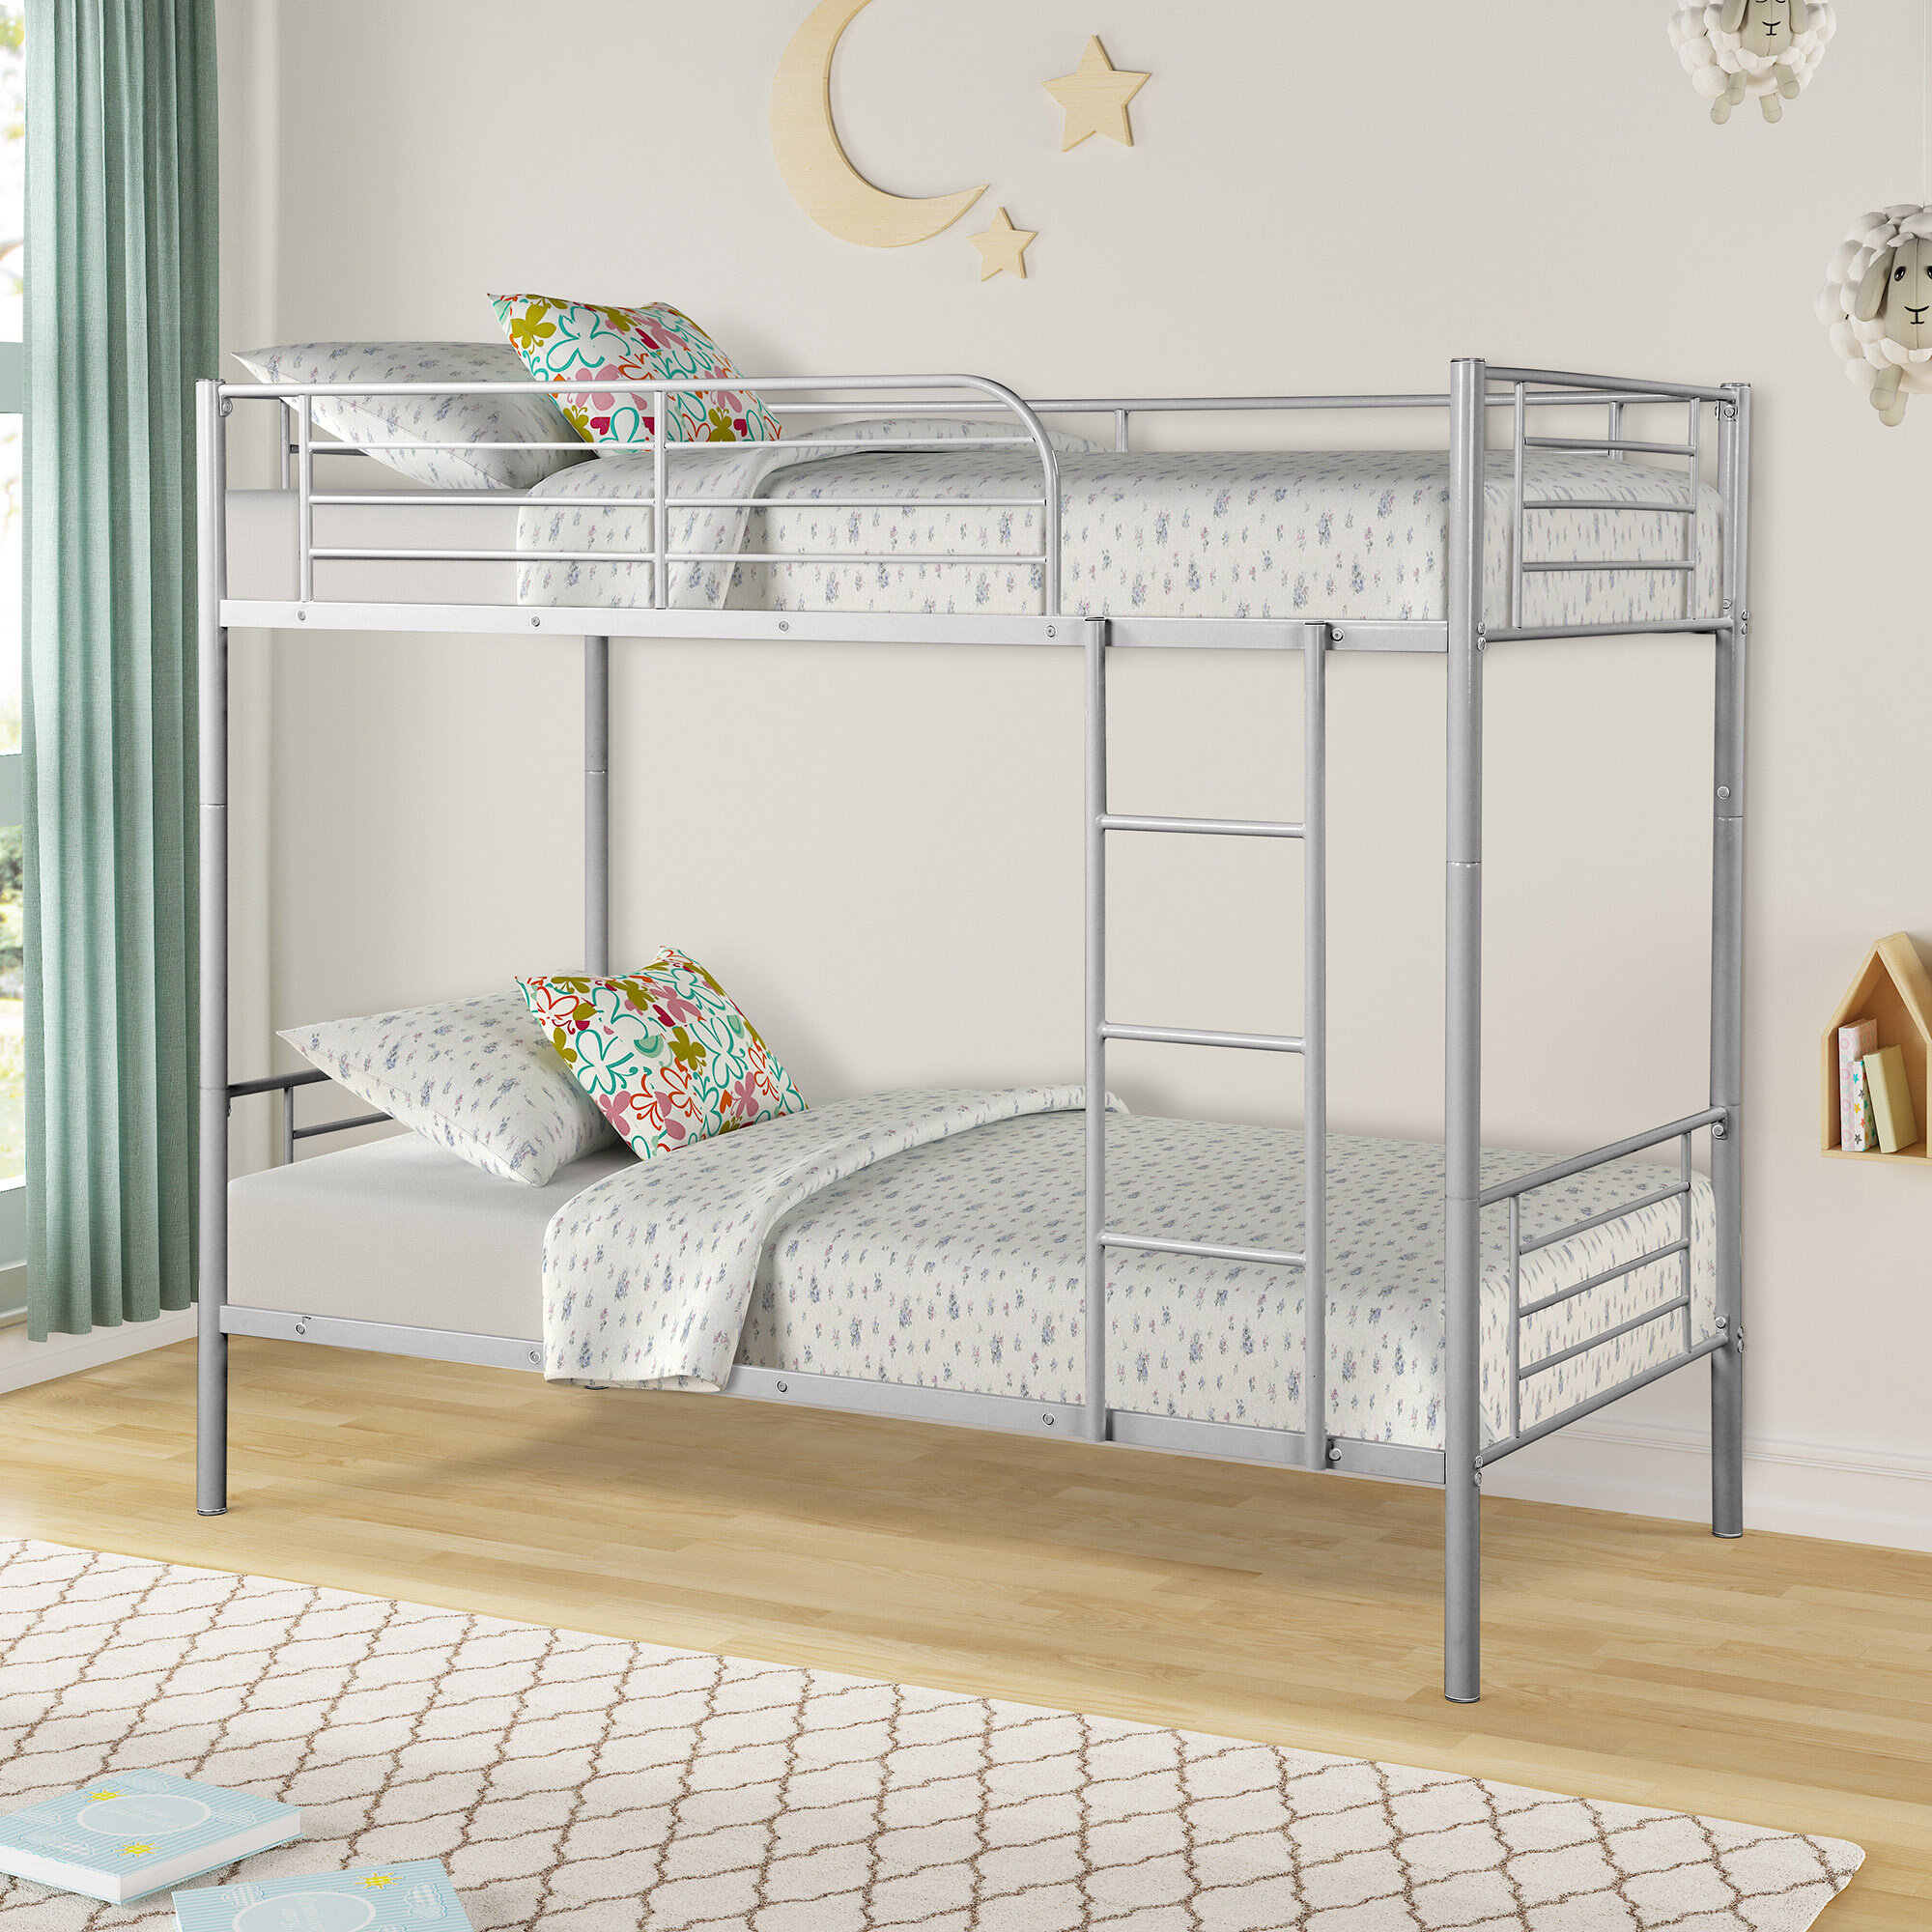 Picture of: Harriet Bee Kendall Twin Over Twin Bunk Bed Reviews Wayfair